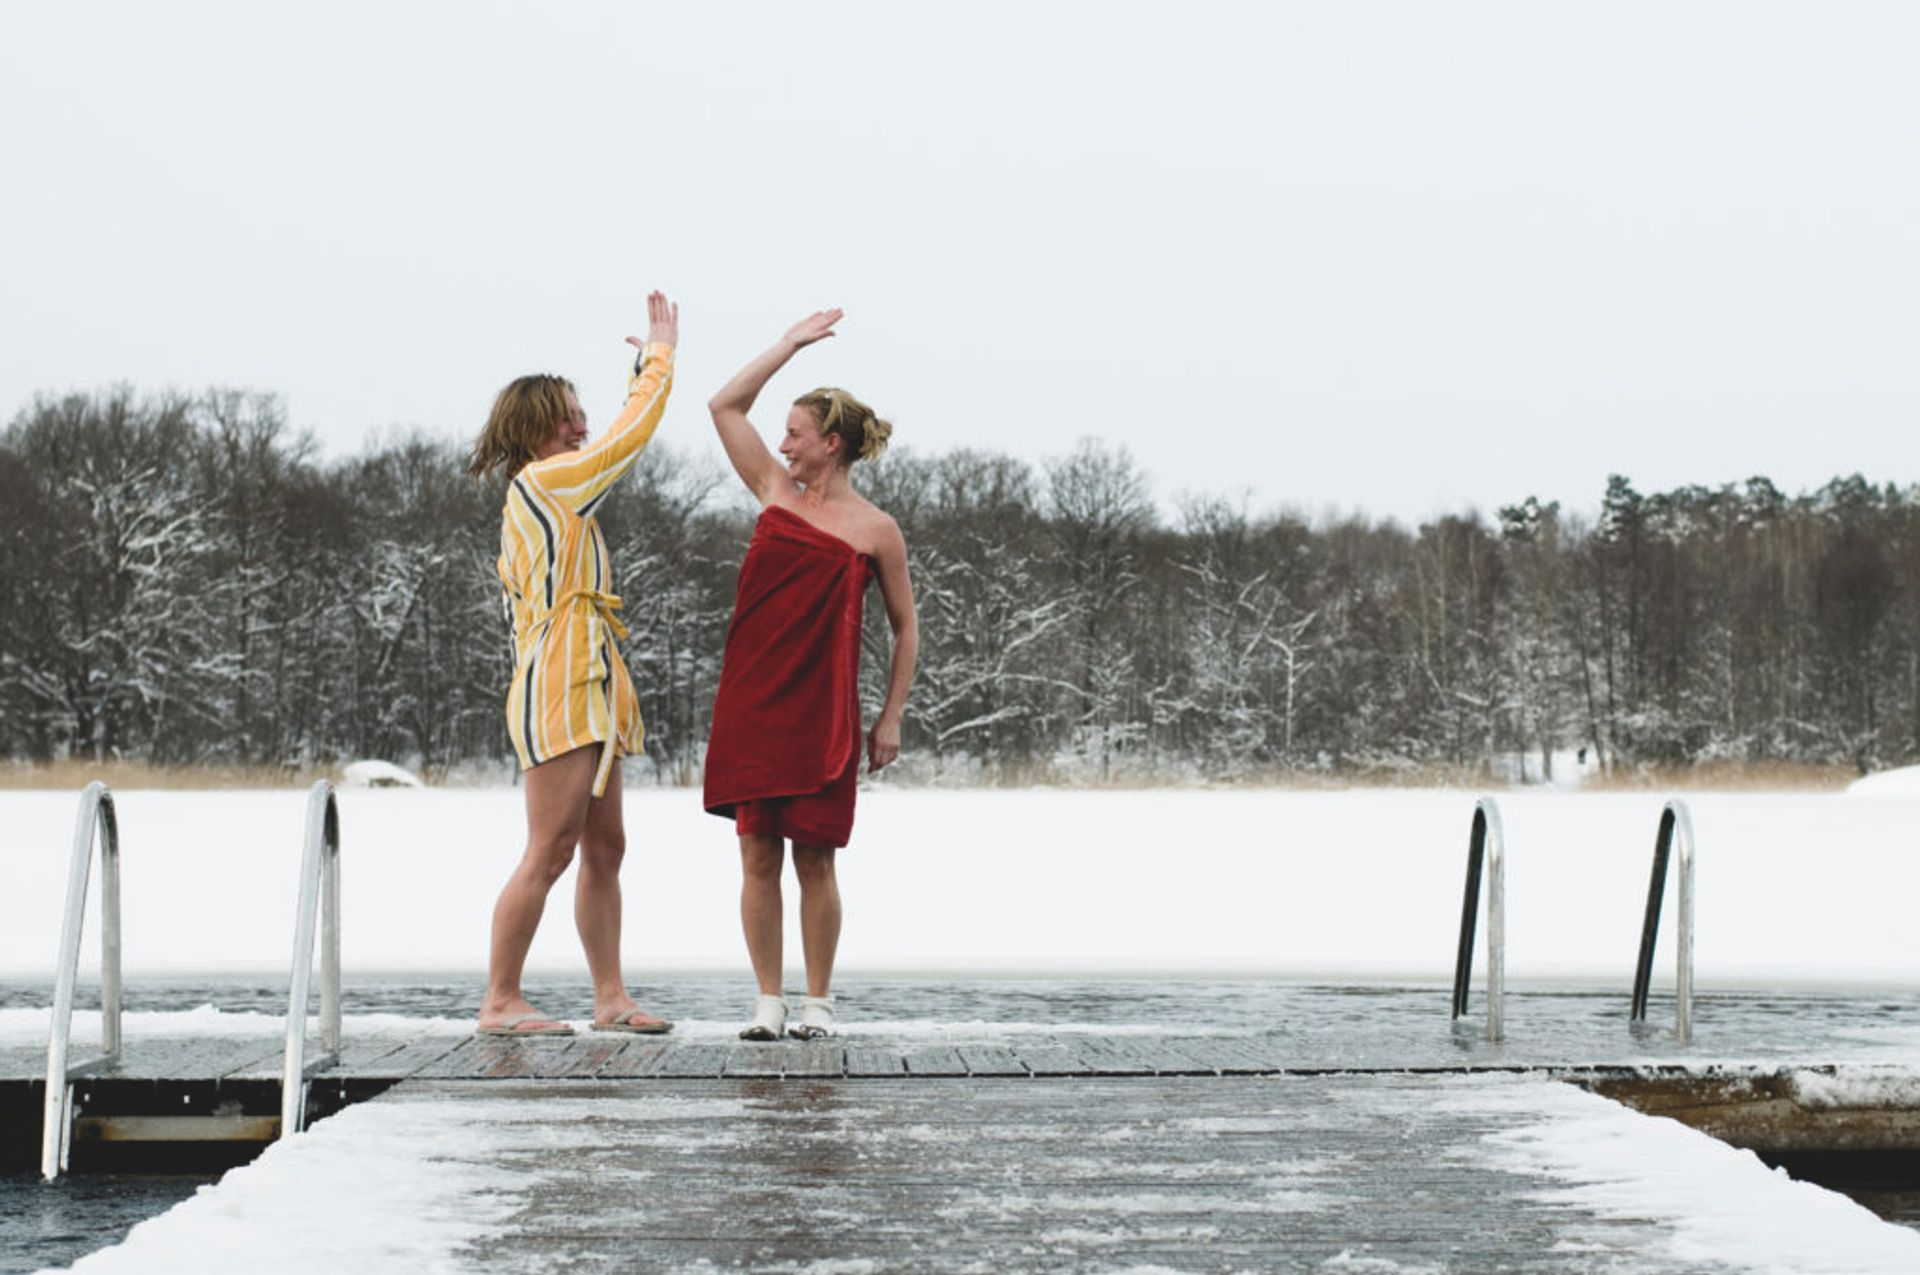 Two people standing on a snow covered jetty.